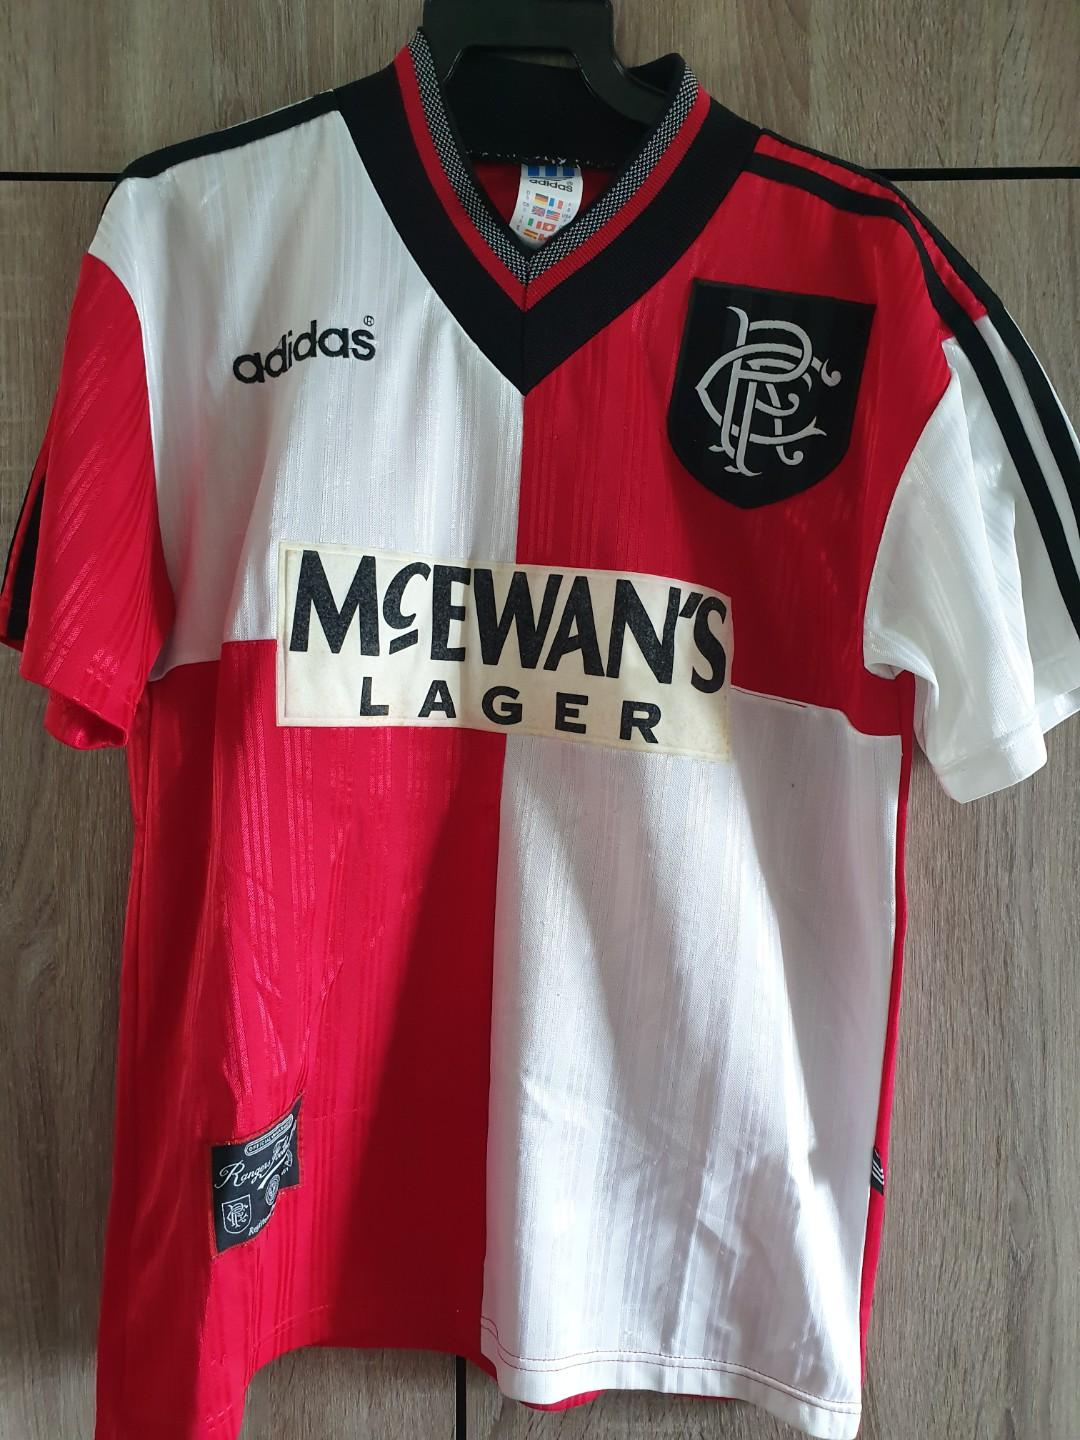 buy popular b9e1c 752ee Glasgow Rangers vintage shirt 1995-96 away jersey, Sports ...